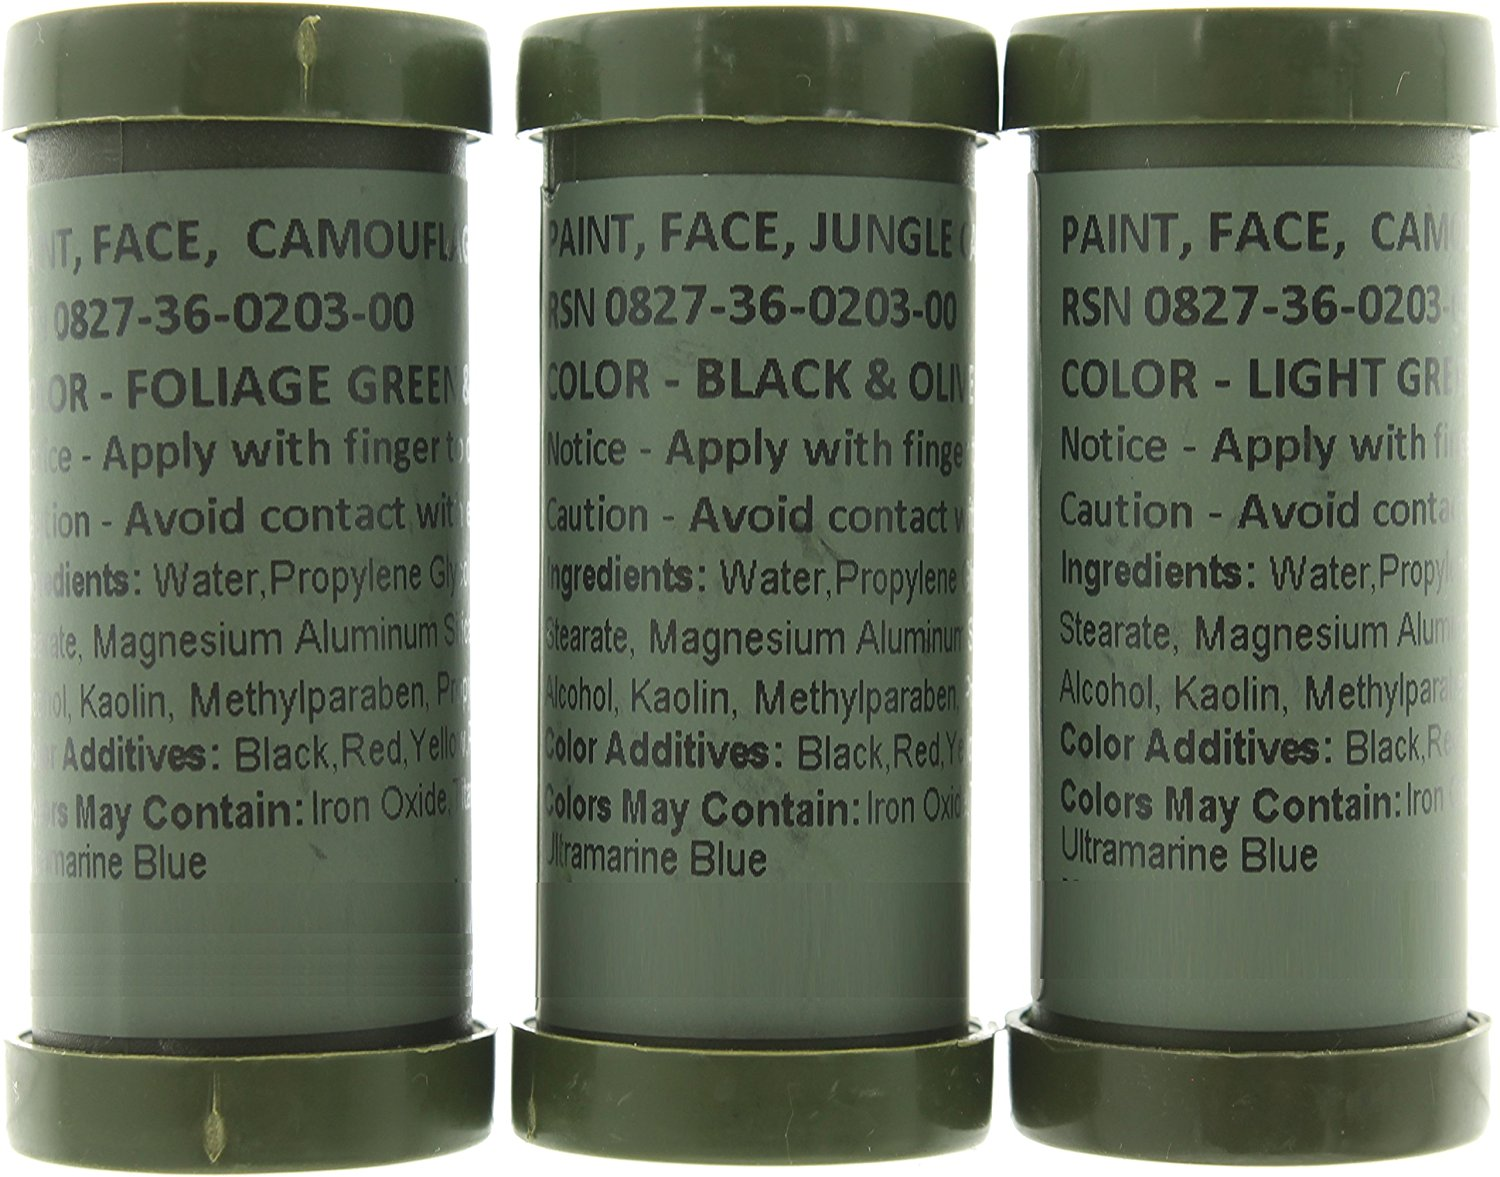 Camo Face Paint, NATO Camouflage Military Makeup Paint Sticks